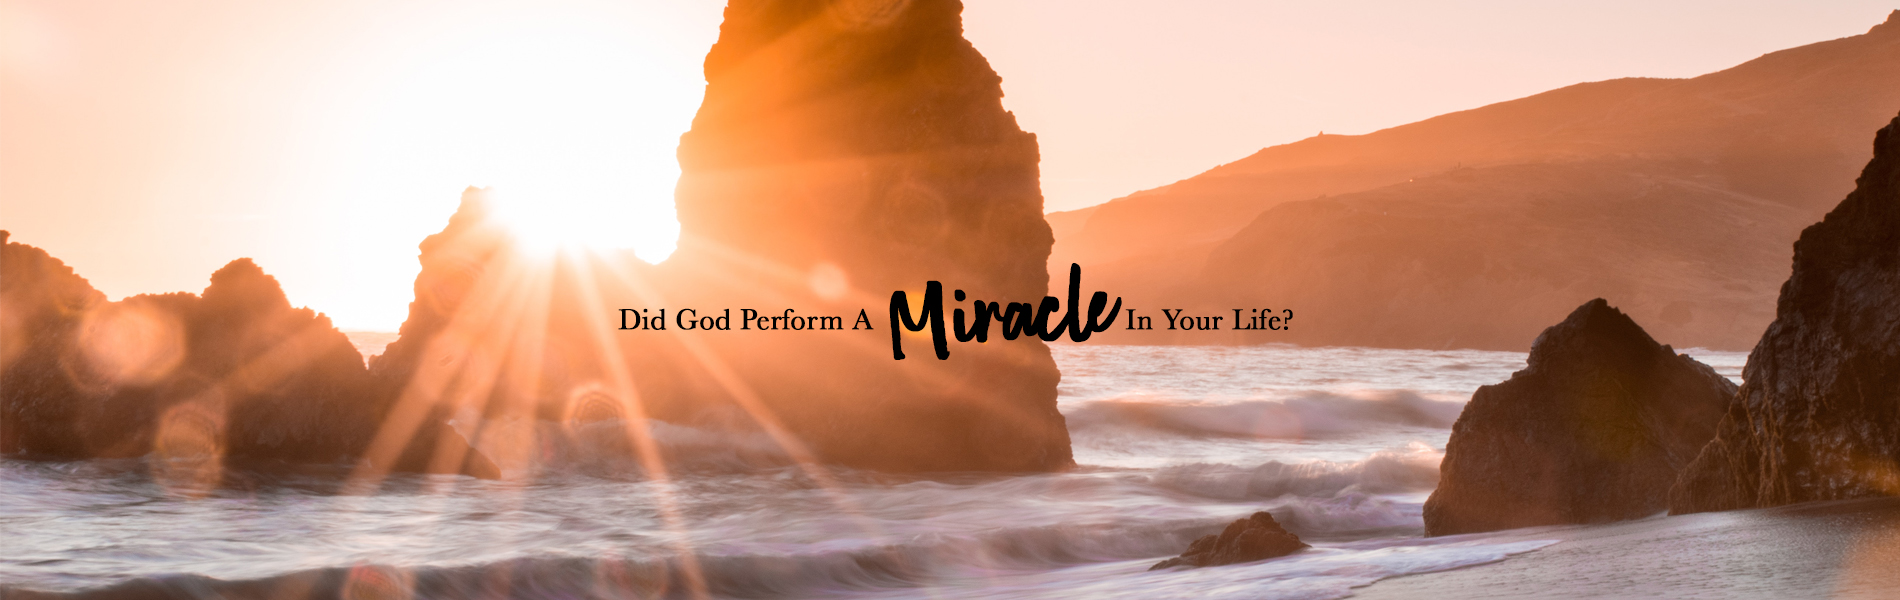 Did-God-Perform-A-Miracle-In-Your-Life New Creation TV | Broadcasting the Gospel of Jesus